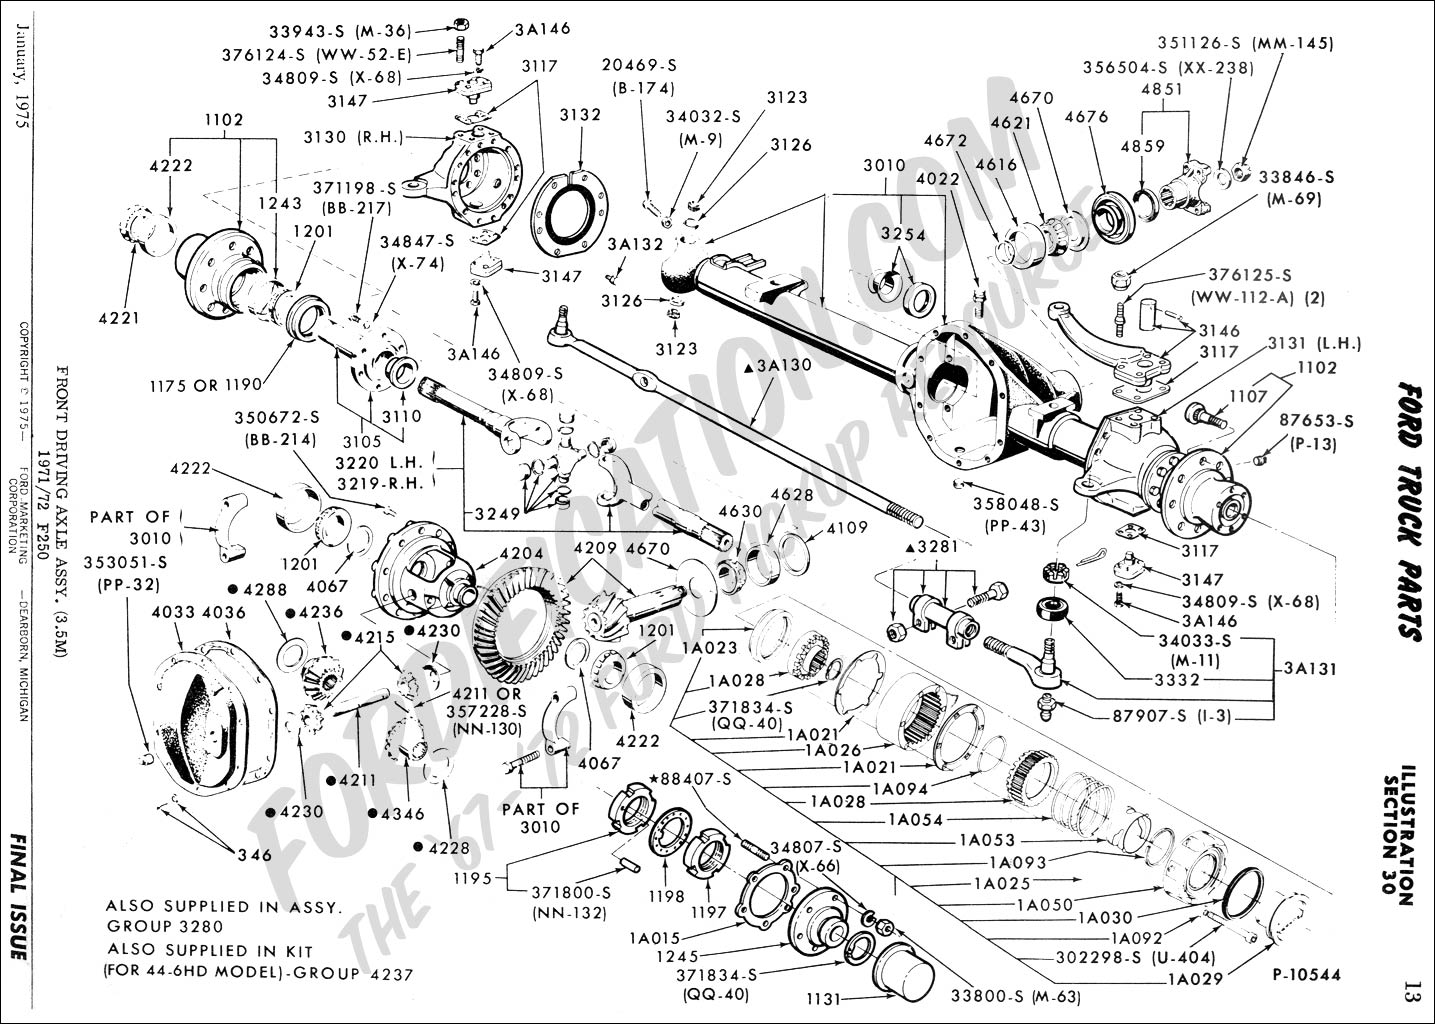 Ford F 250 Parts Diagram Manual Guide Wiring. Ford F250 Rear Differential Diagram Wiring F 350 Parts Super Duty. Ford. 2015 Ford F150 Engine Diagram At Scoala.co